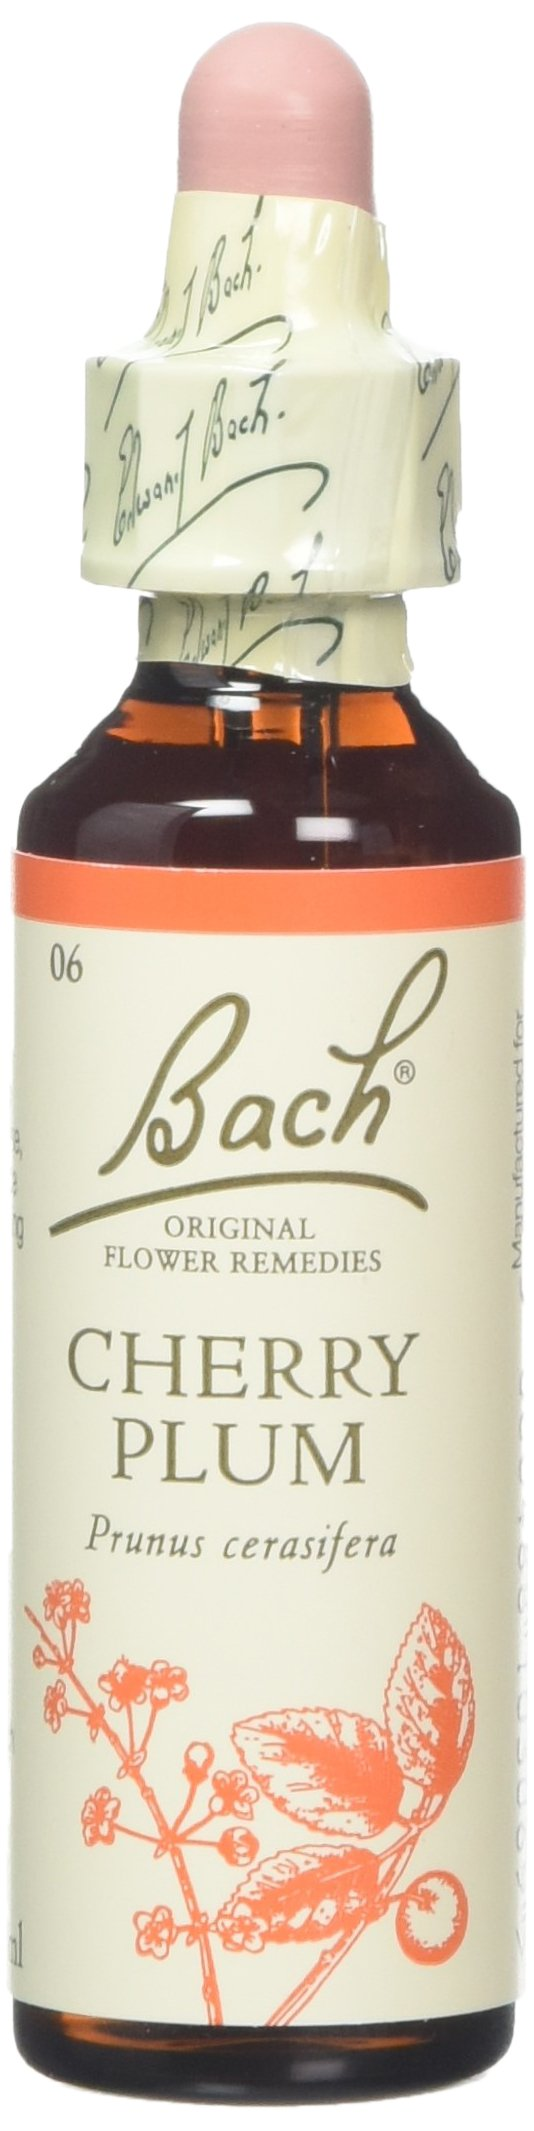 Bach Original Flower Remedies Cherry Plum 20ml